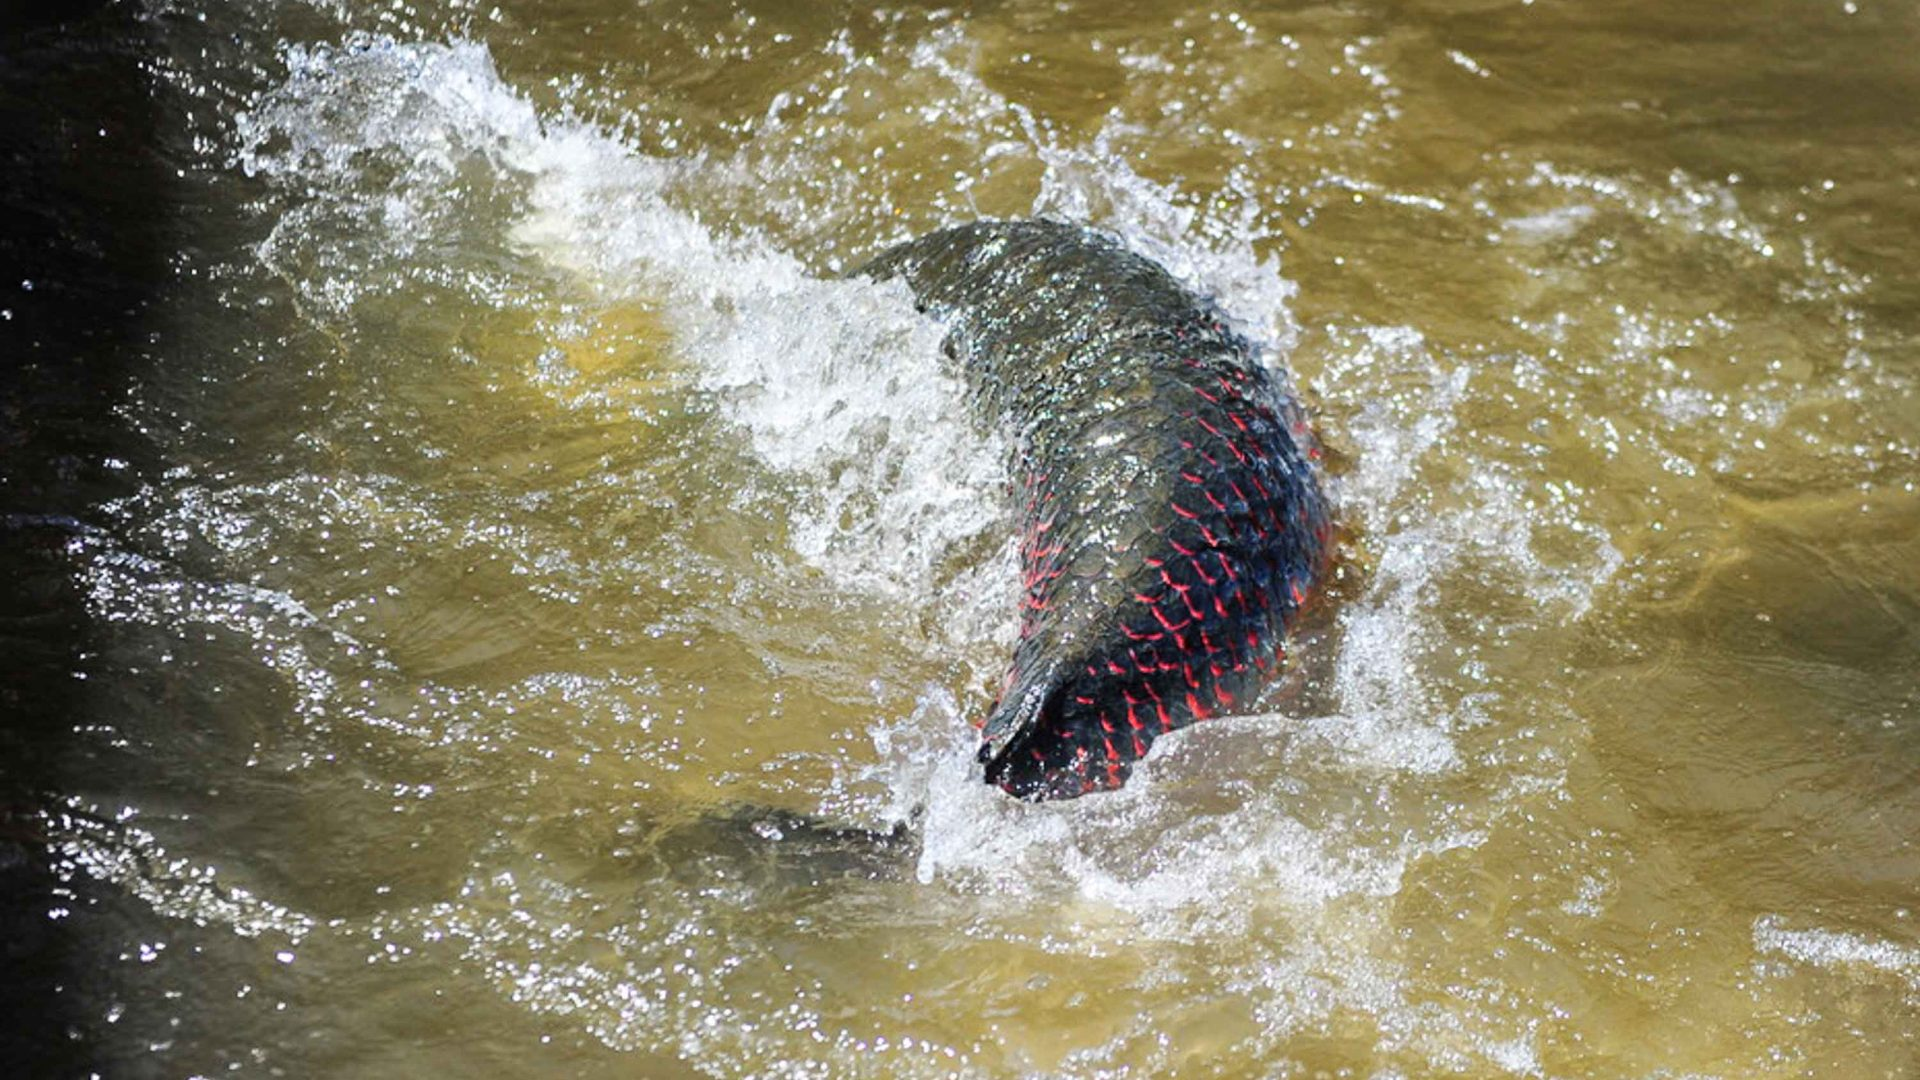 An arapaima fish in the Amazon river.